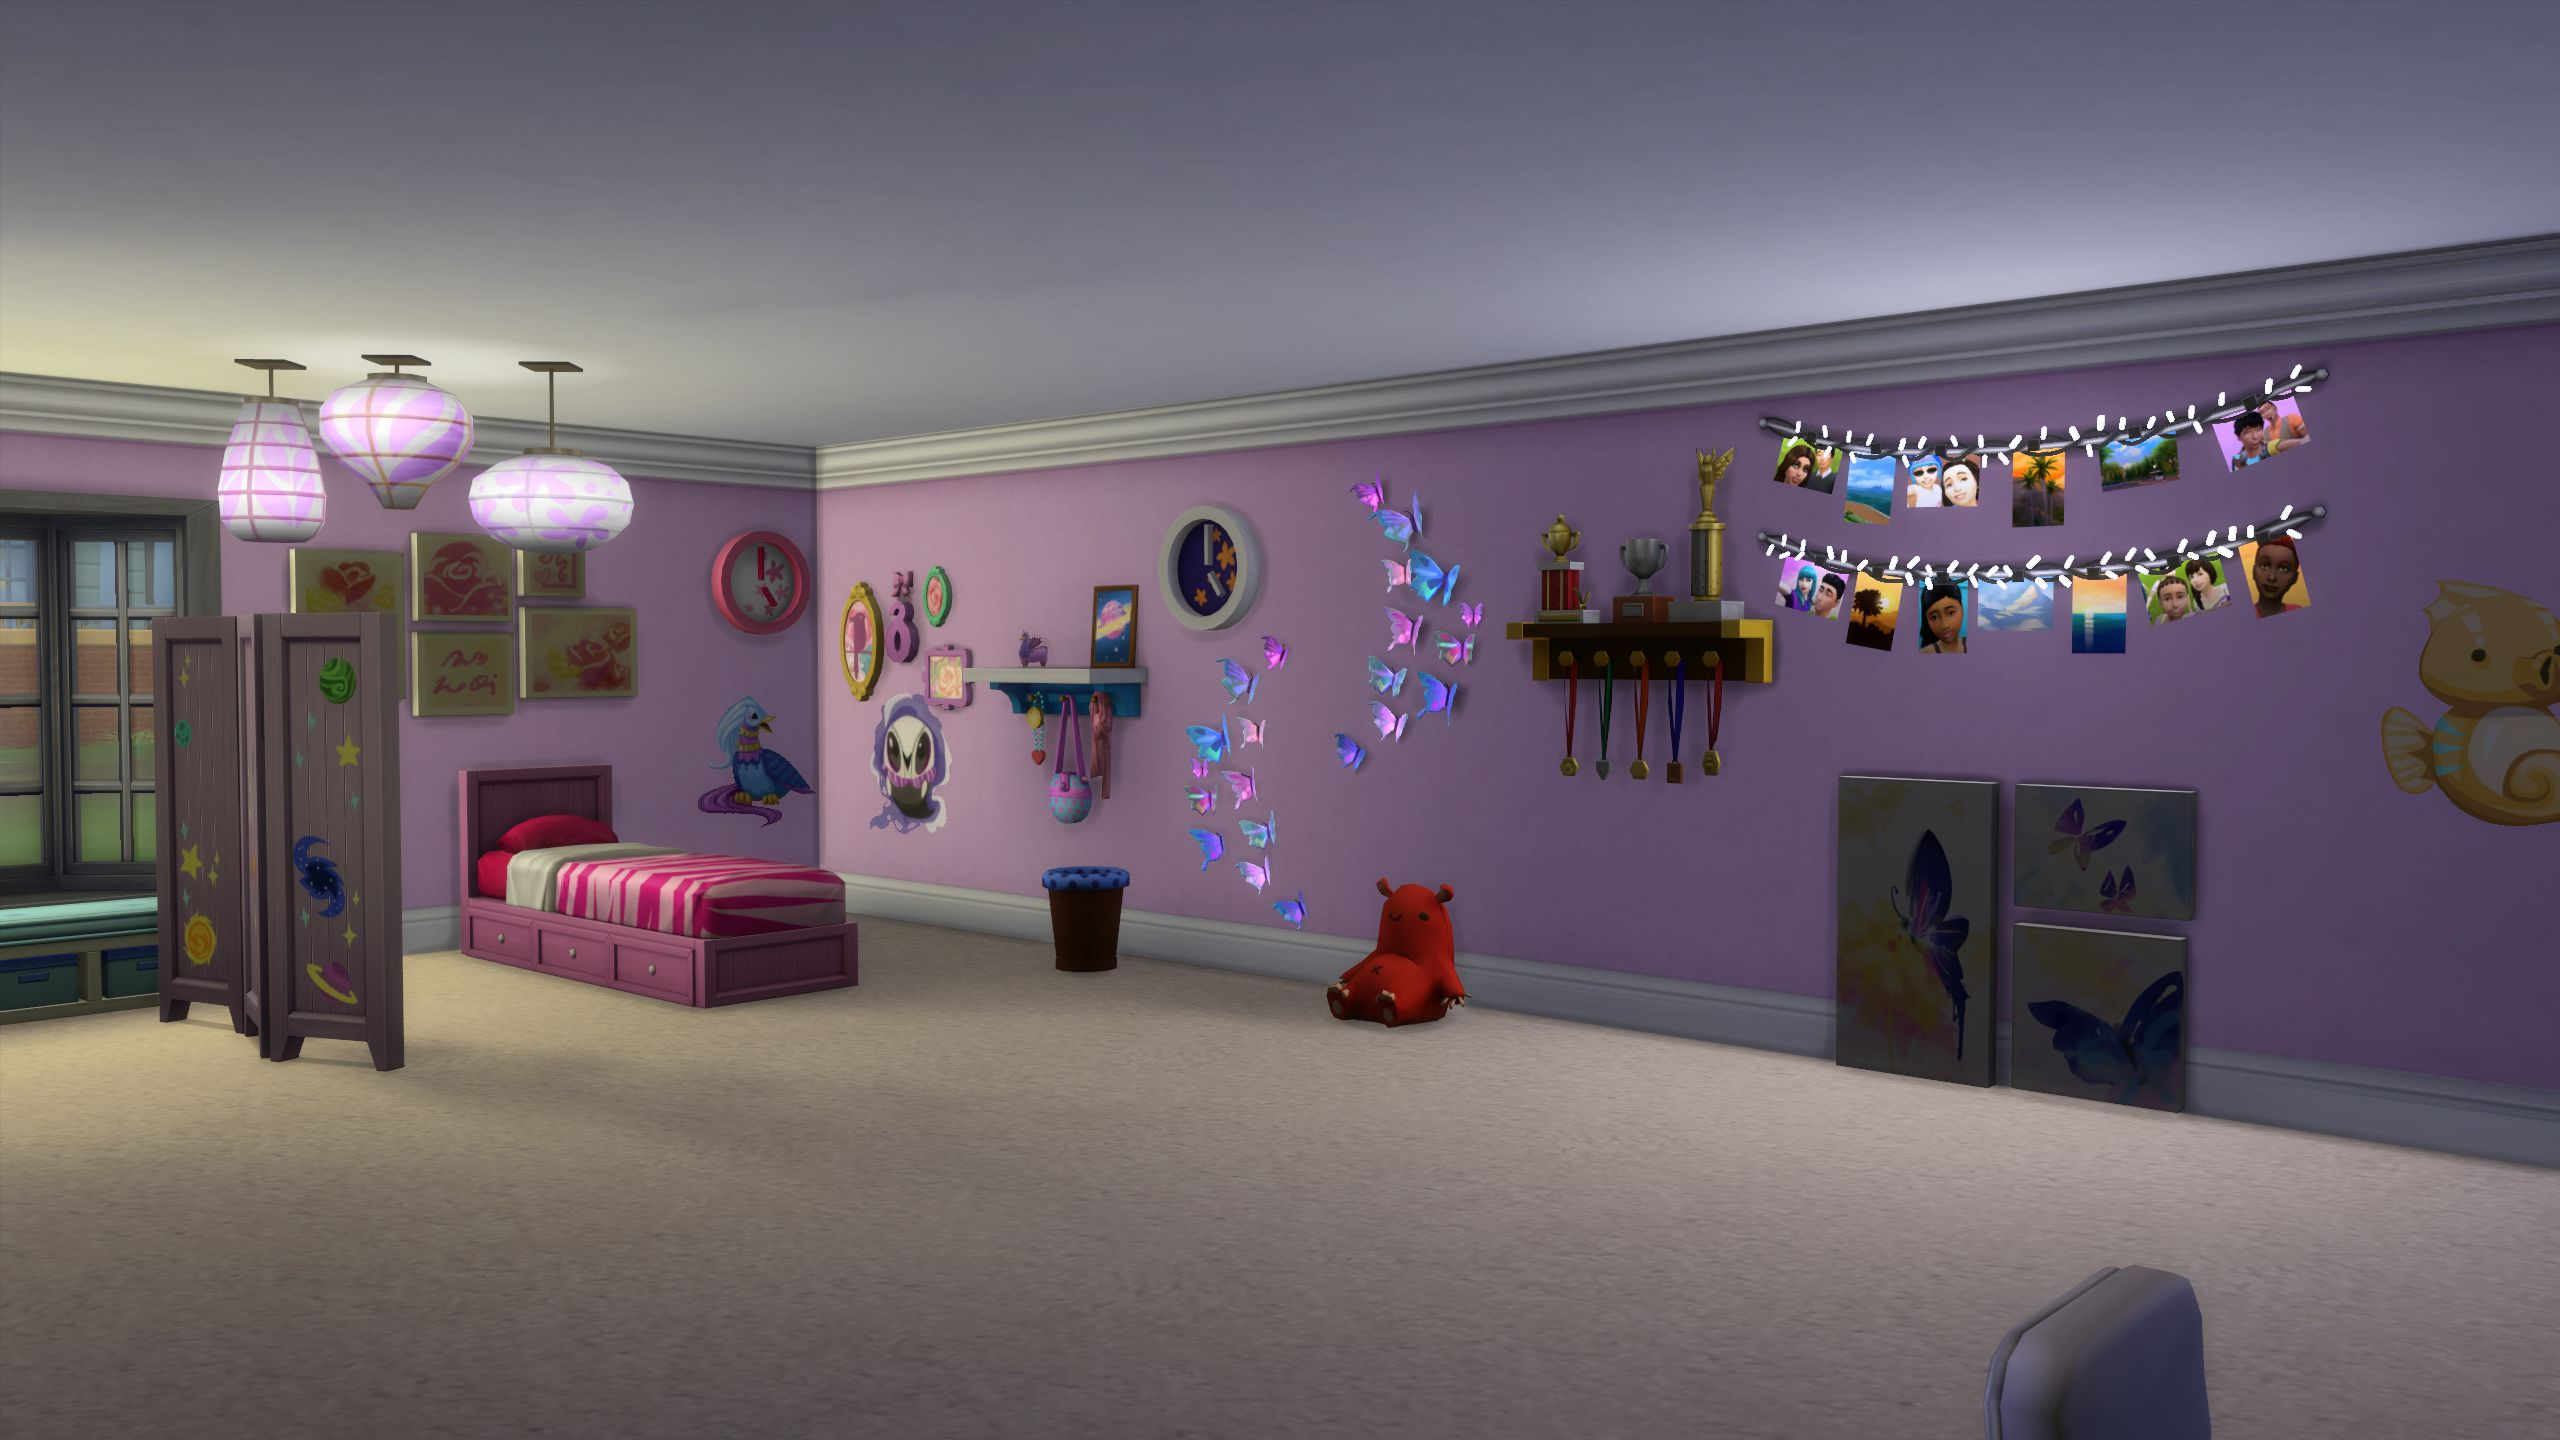 The sims 4 kids room stuff pack for Stuff to decorate room